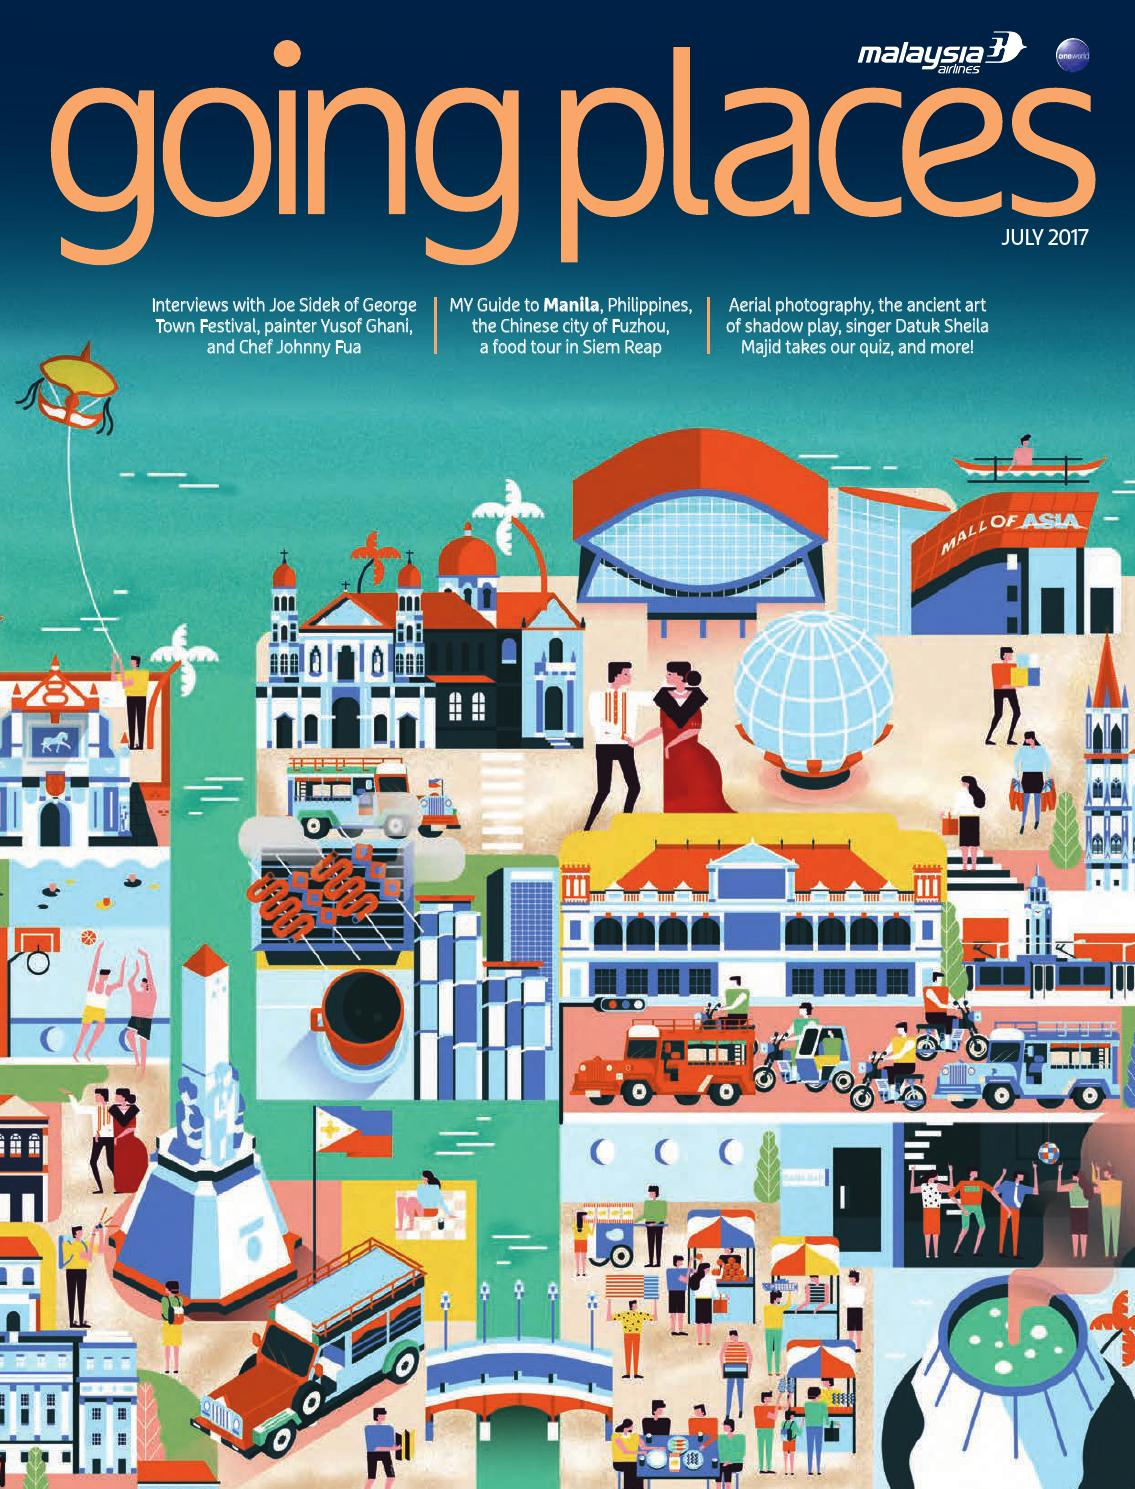 Going Places July 2017 by Spafax Malaysia - issuu